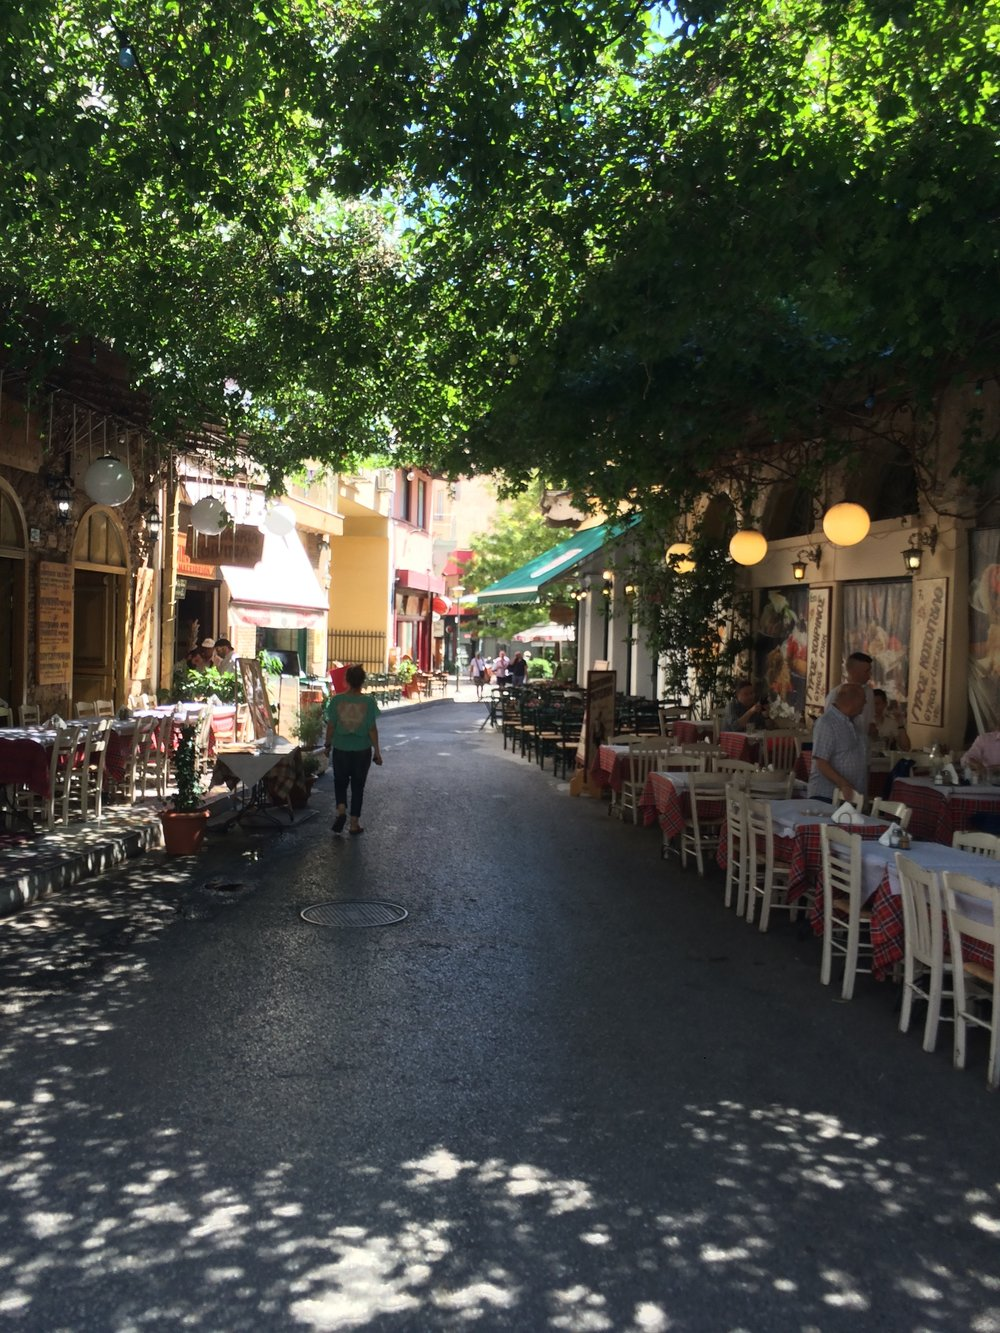 The Plaka - a wonderful spot in Athens for incredible food. Gyros and a crema are a MUST!